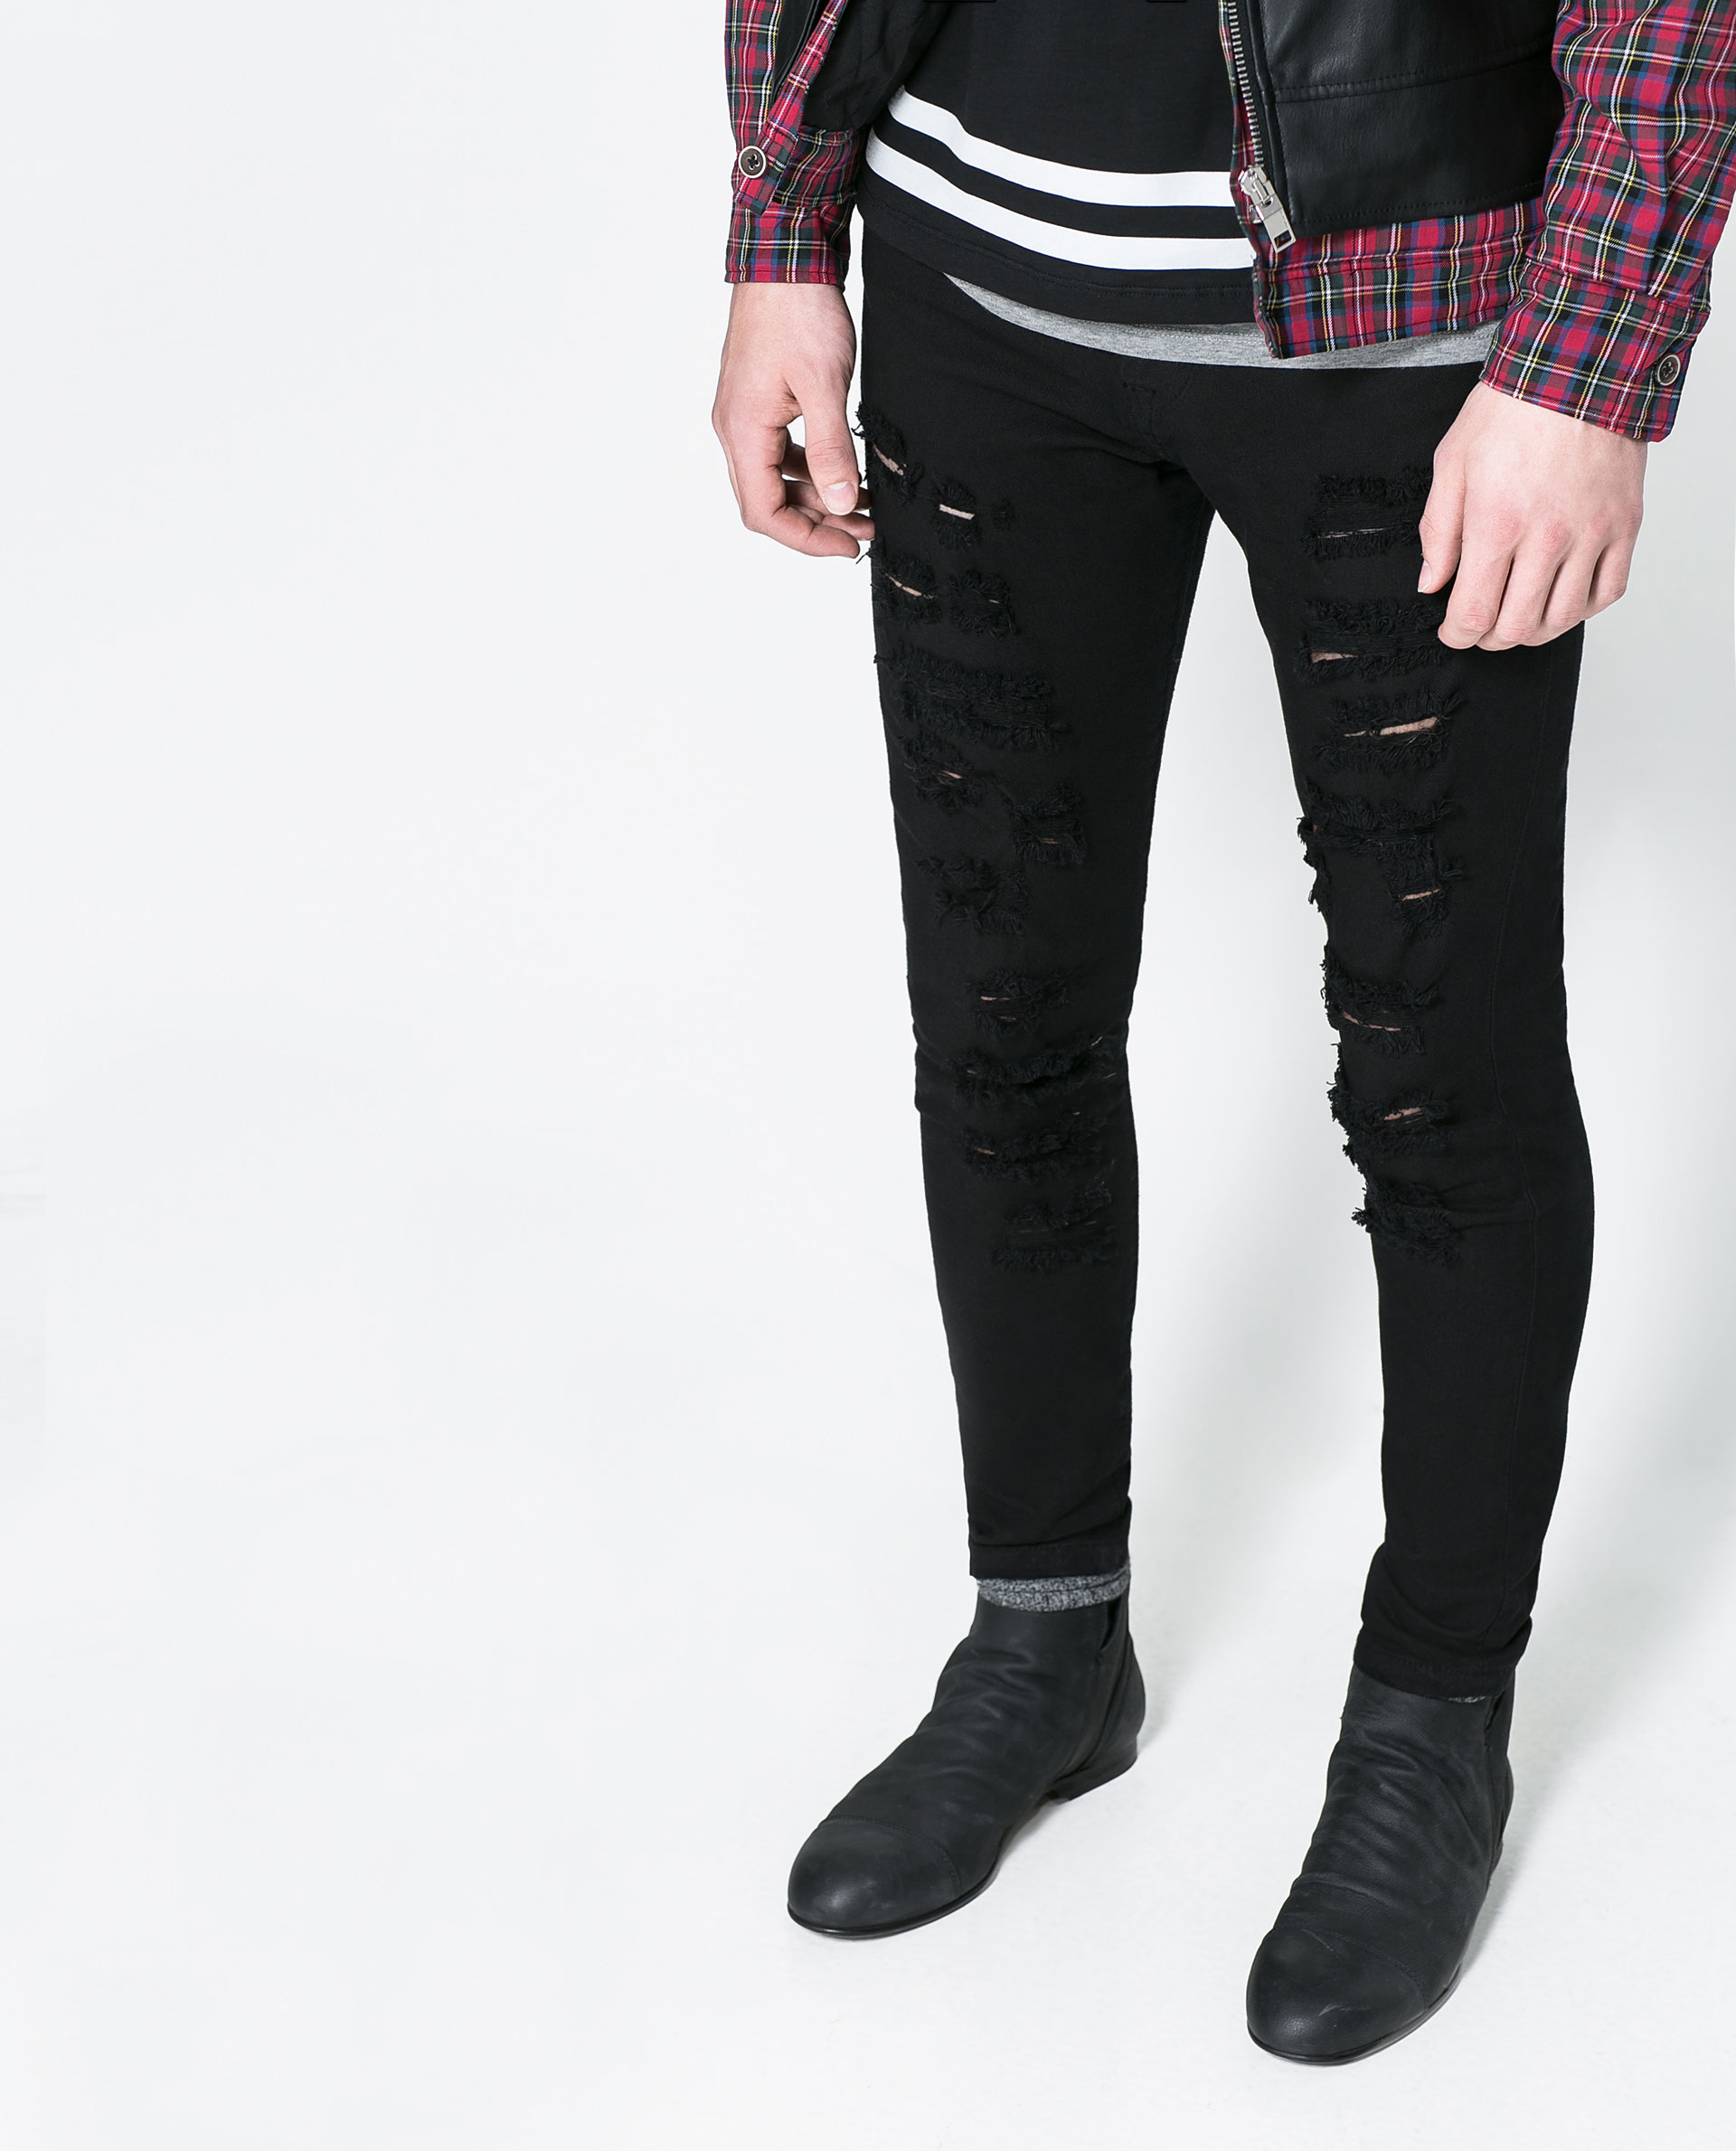 Cheap jean jacket for men, Buy Quality men jean directly from China men leather jeans Suppliers: New Black Ripped Jeans Men With Holes Denim Super Skinny Famous Designer Brand Slim Fit Jean Pants Scratched Biker Jeans Enjoy Free Shipping Worldwide! Limited Time Sale Easy Return/5().